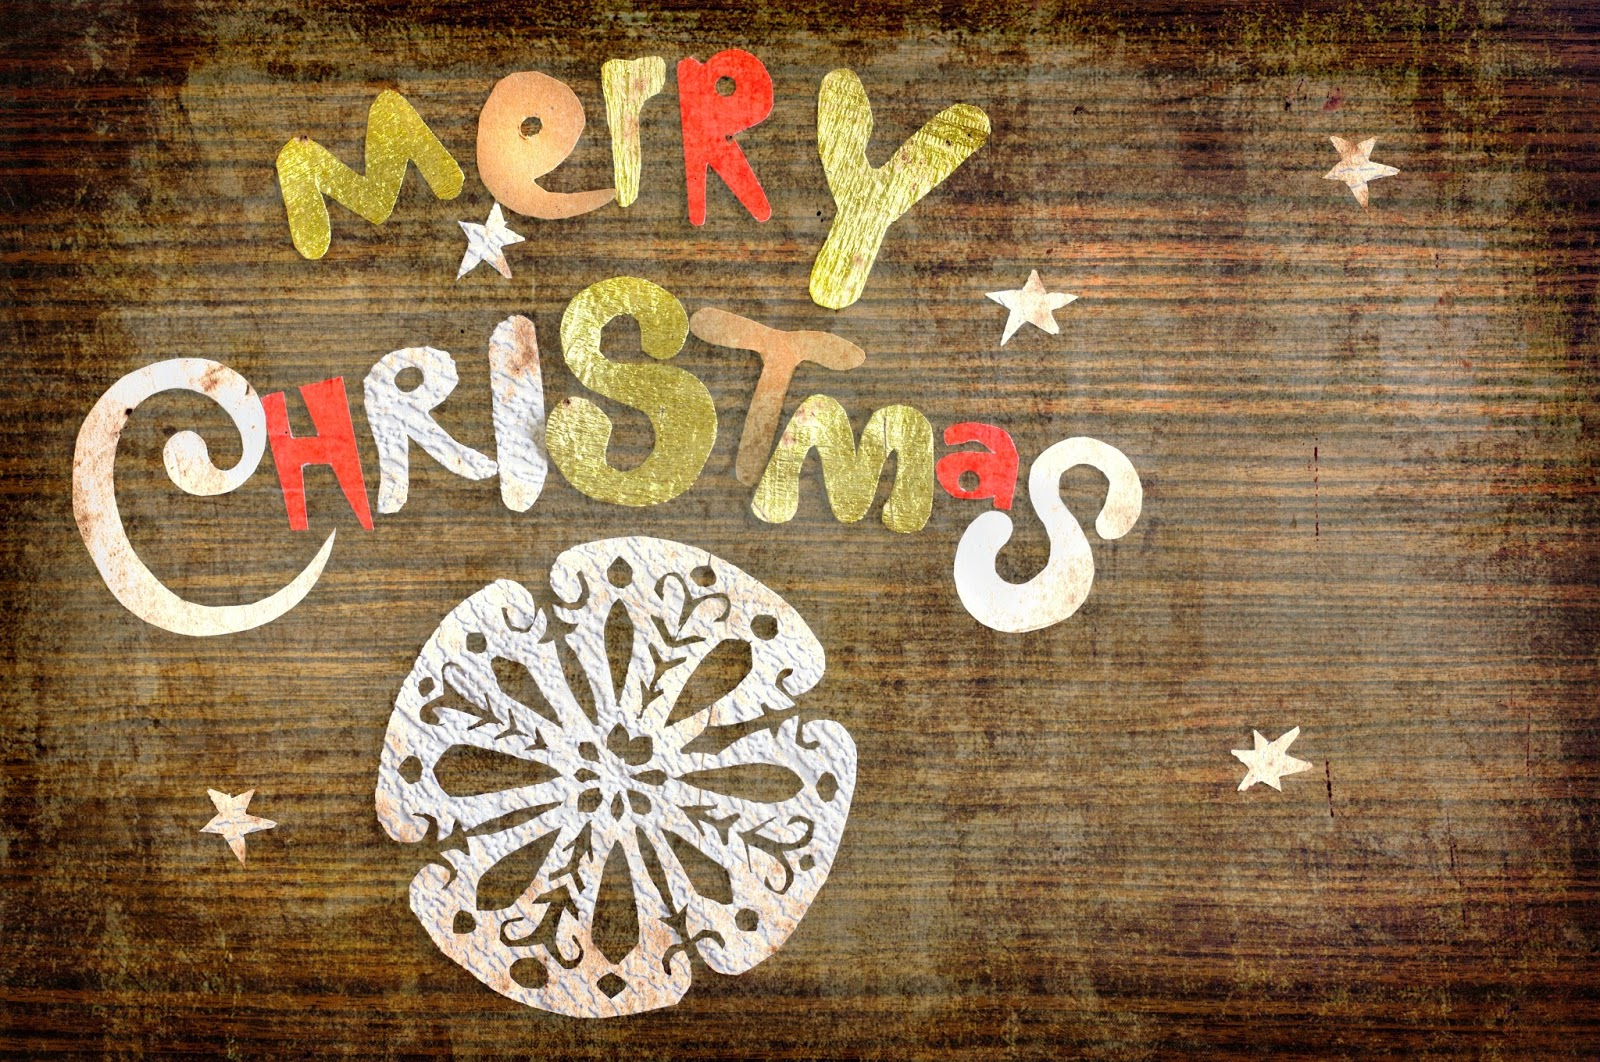 Merry-Christmas-text-with-wooden-background-theme-wallpaper-image.jpg